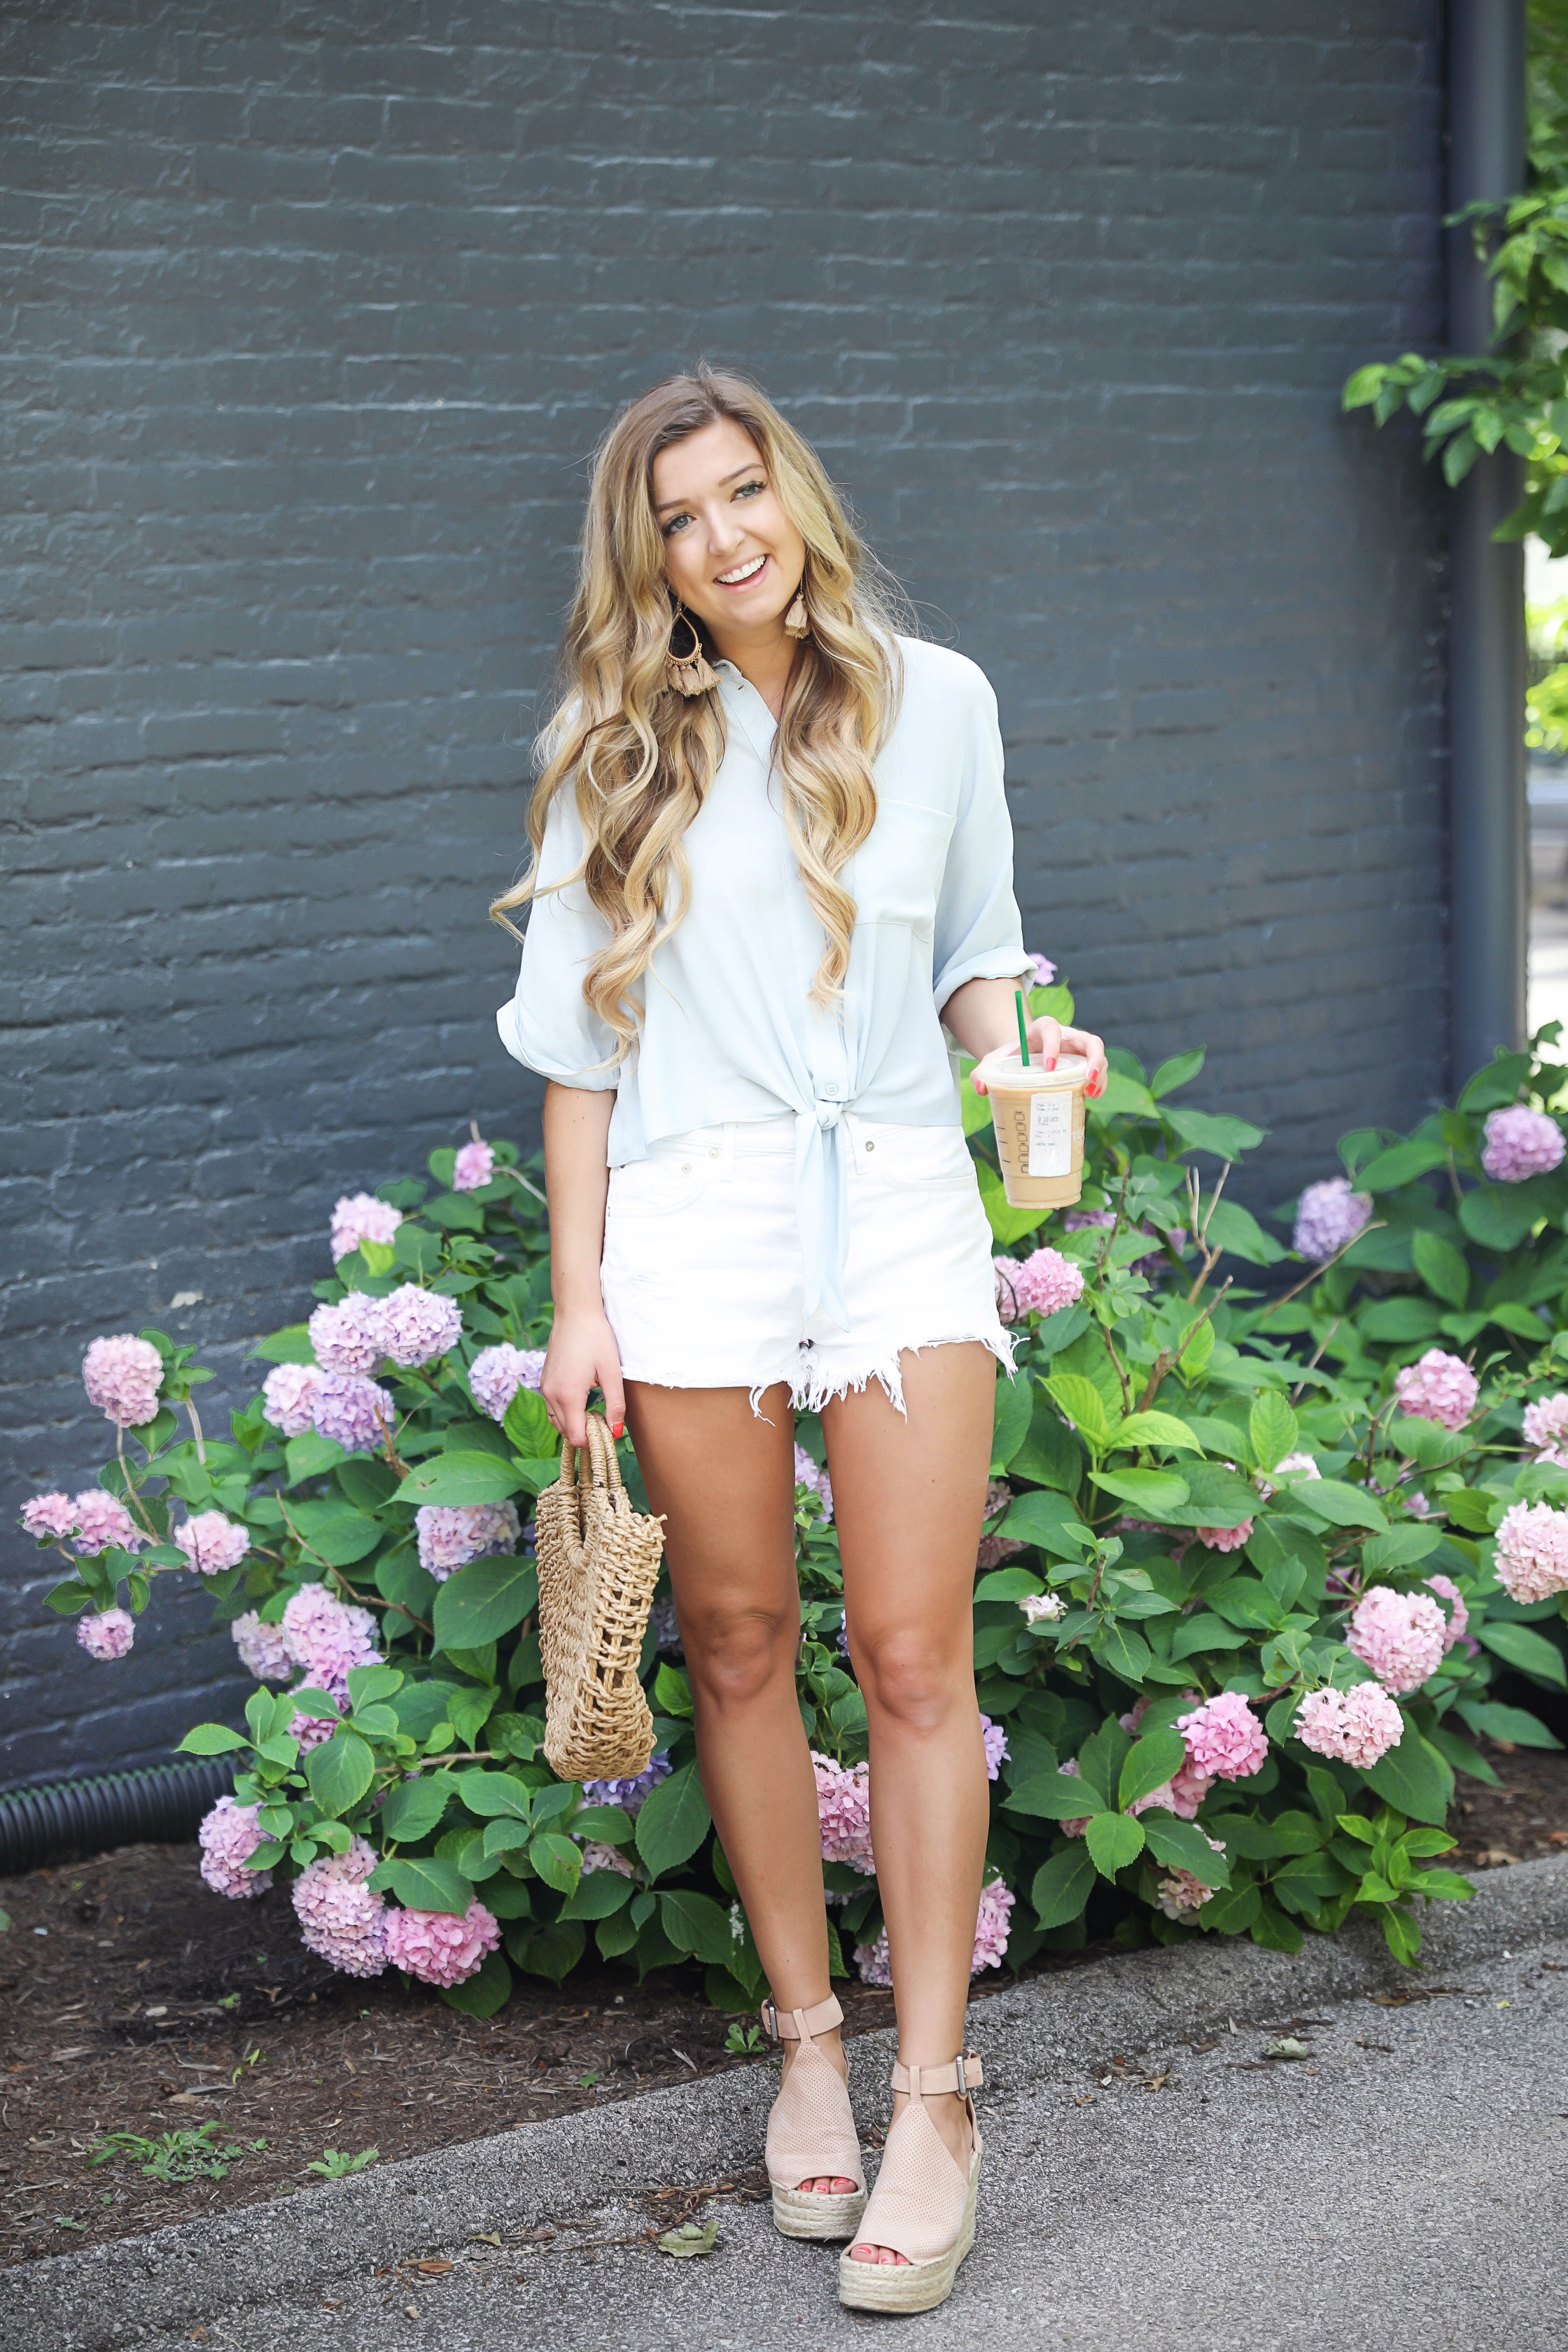 Light blue tied top paired with white denim cut off shorts! Cute straw beach bag with marc fisher wedges! I love starbucks iced coffees with my outfits! I shot this in front of some pretty hydrangeas in Lexington, Kentucky! Details on daily dose of charm lauren lindmark